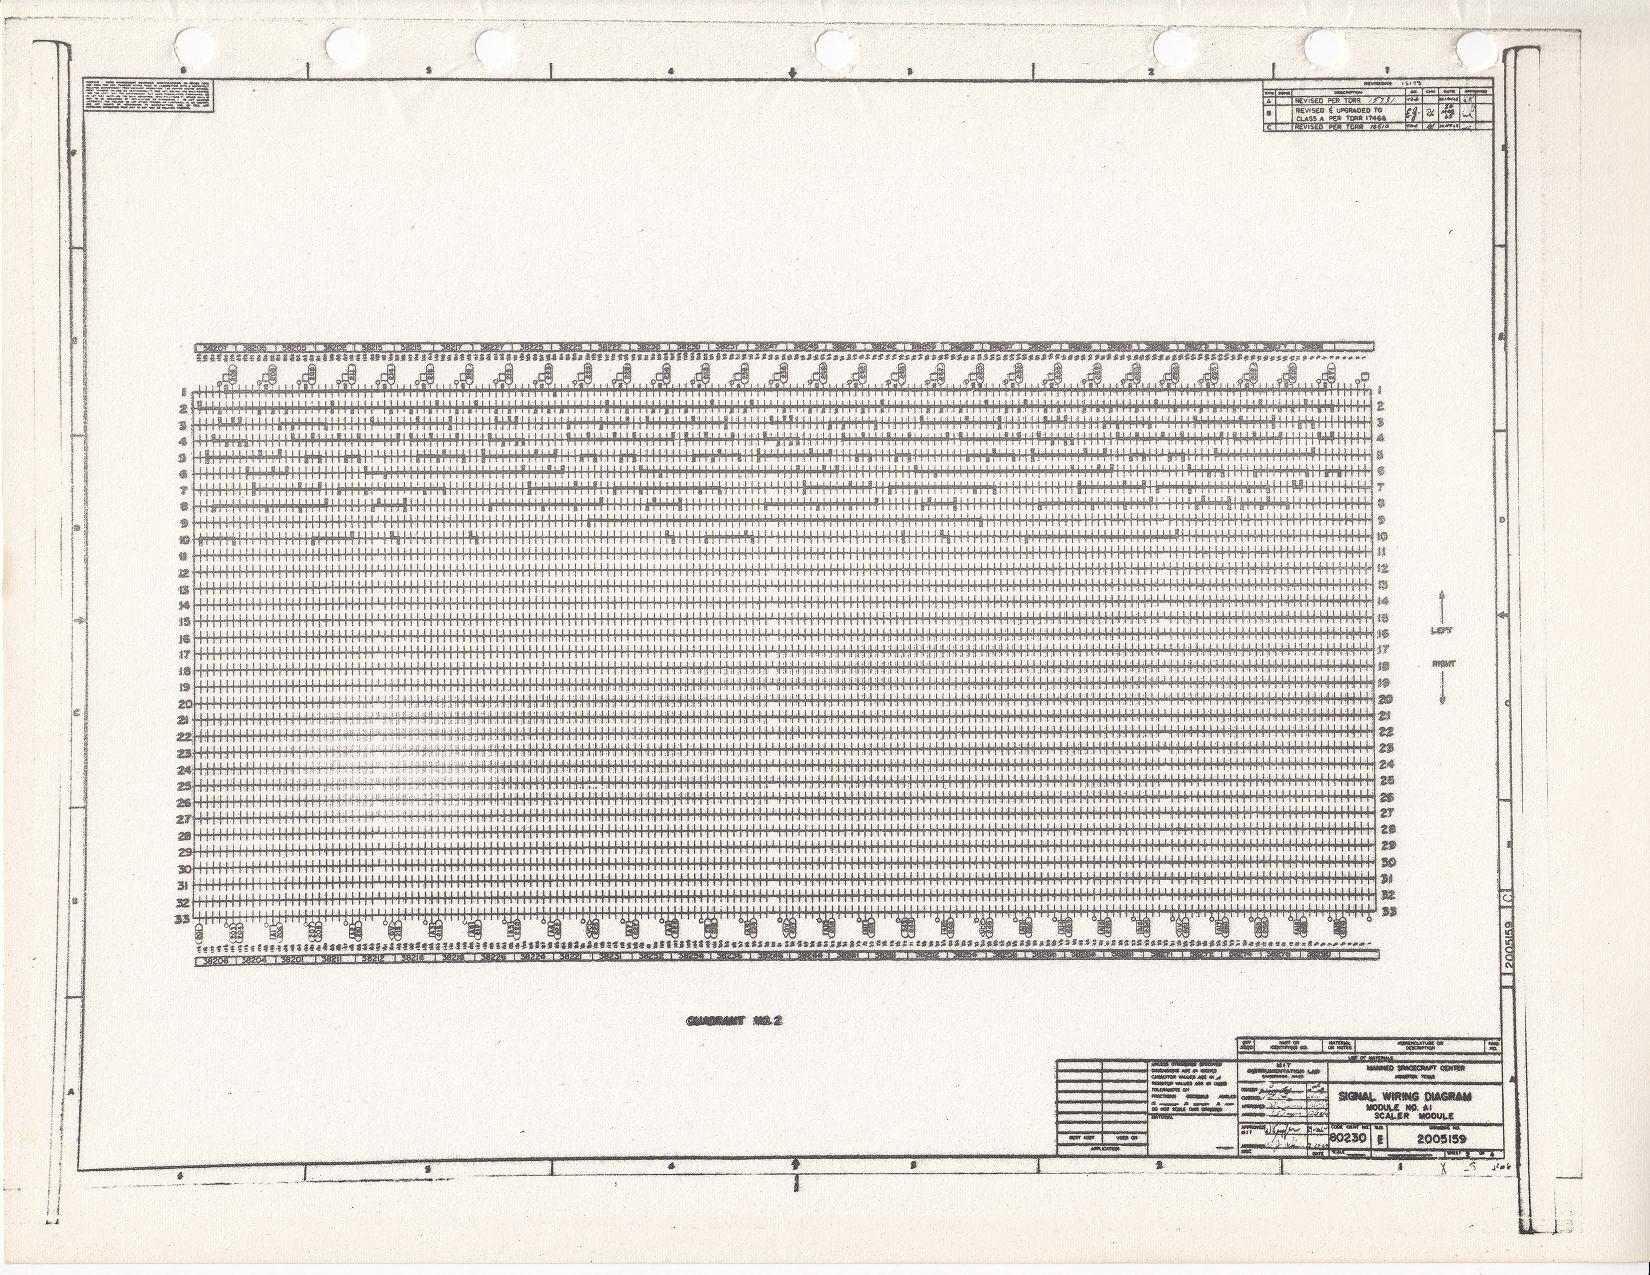 Virtual Agc Electrical Mechanical Page 292 Y Block Wiring Diagram Drawings For Lm Ii